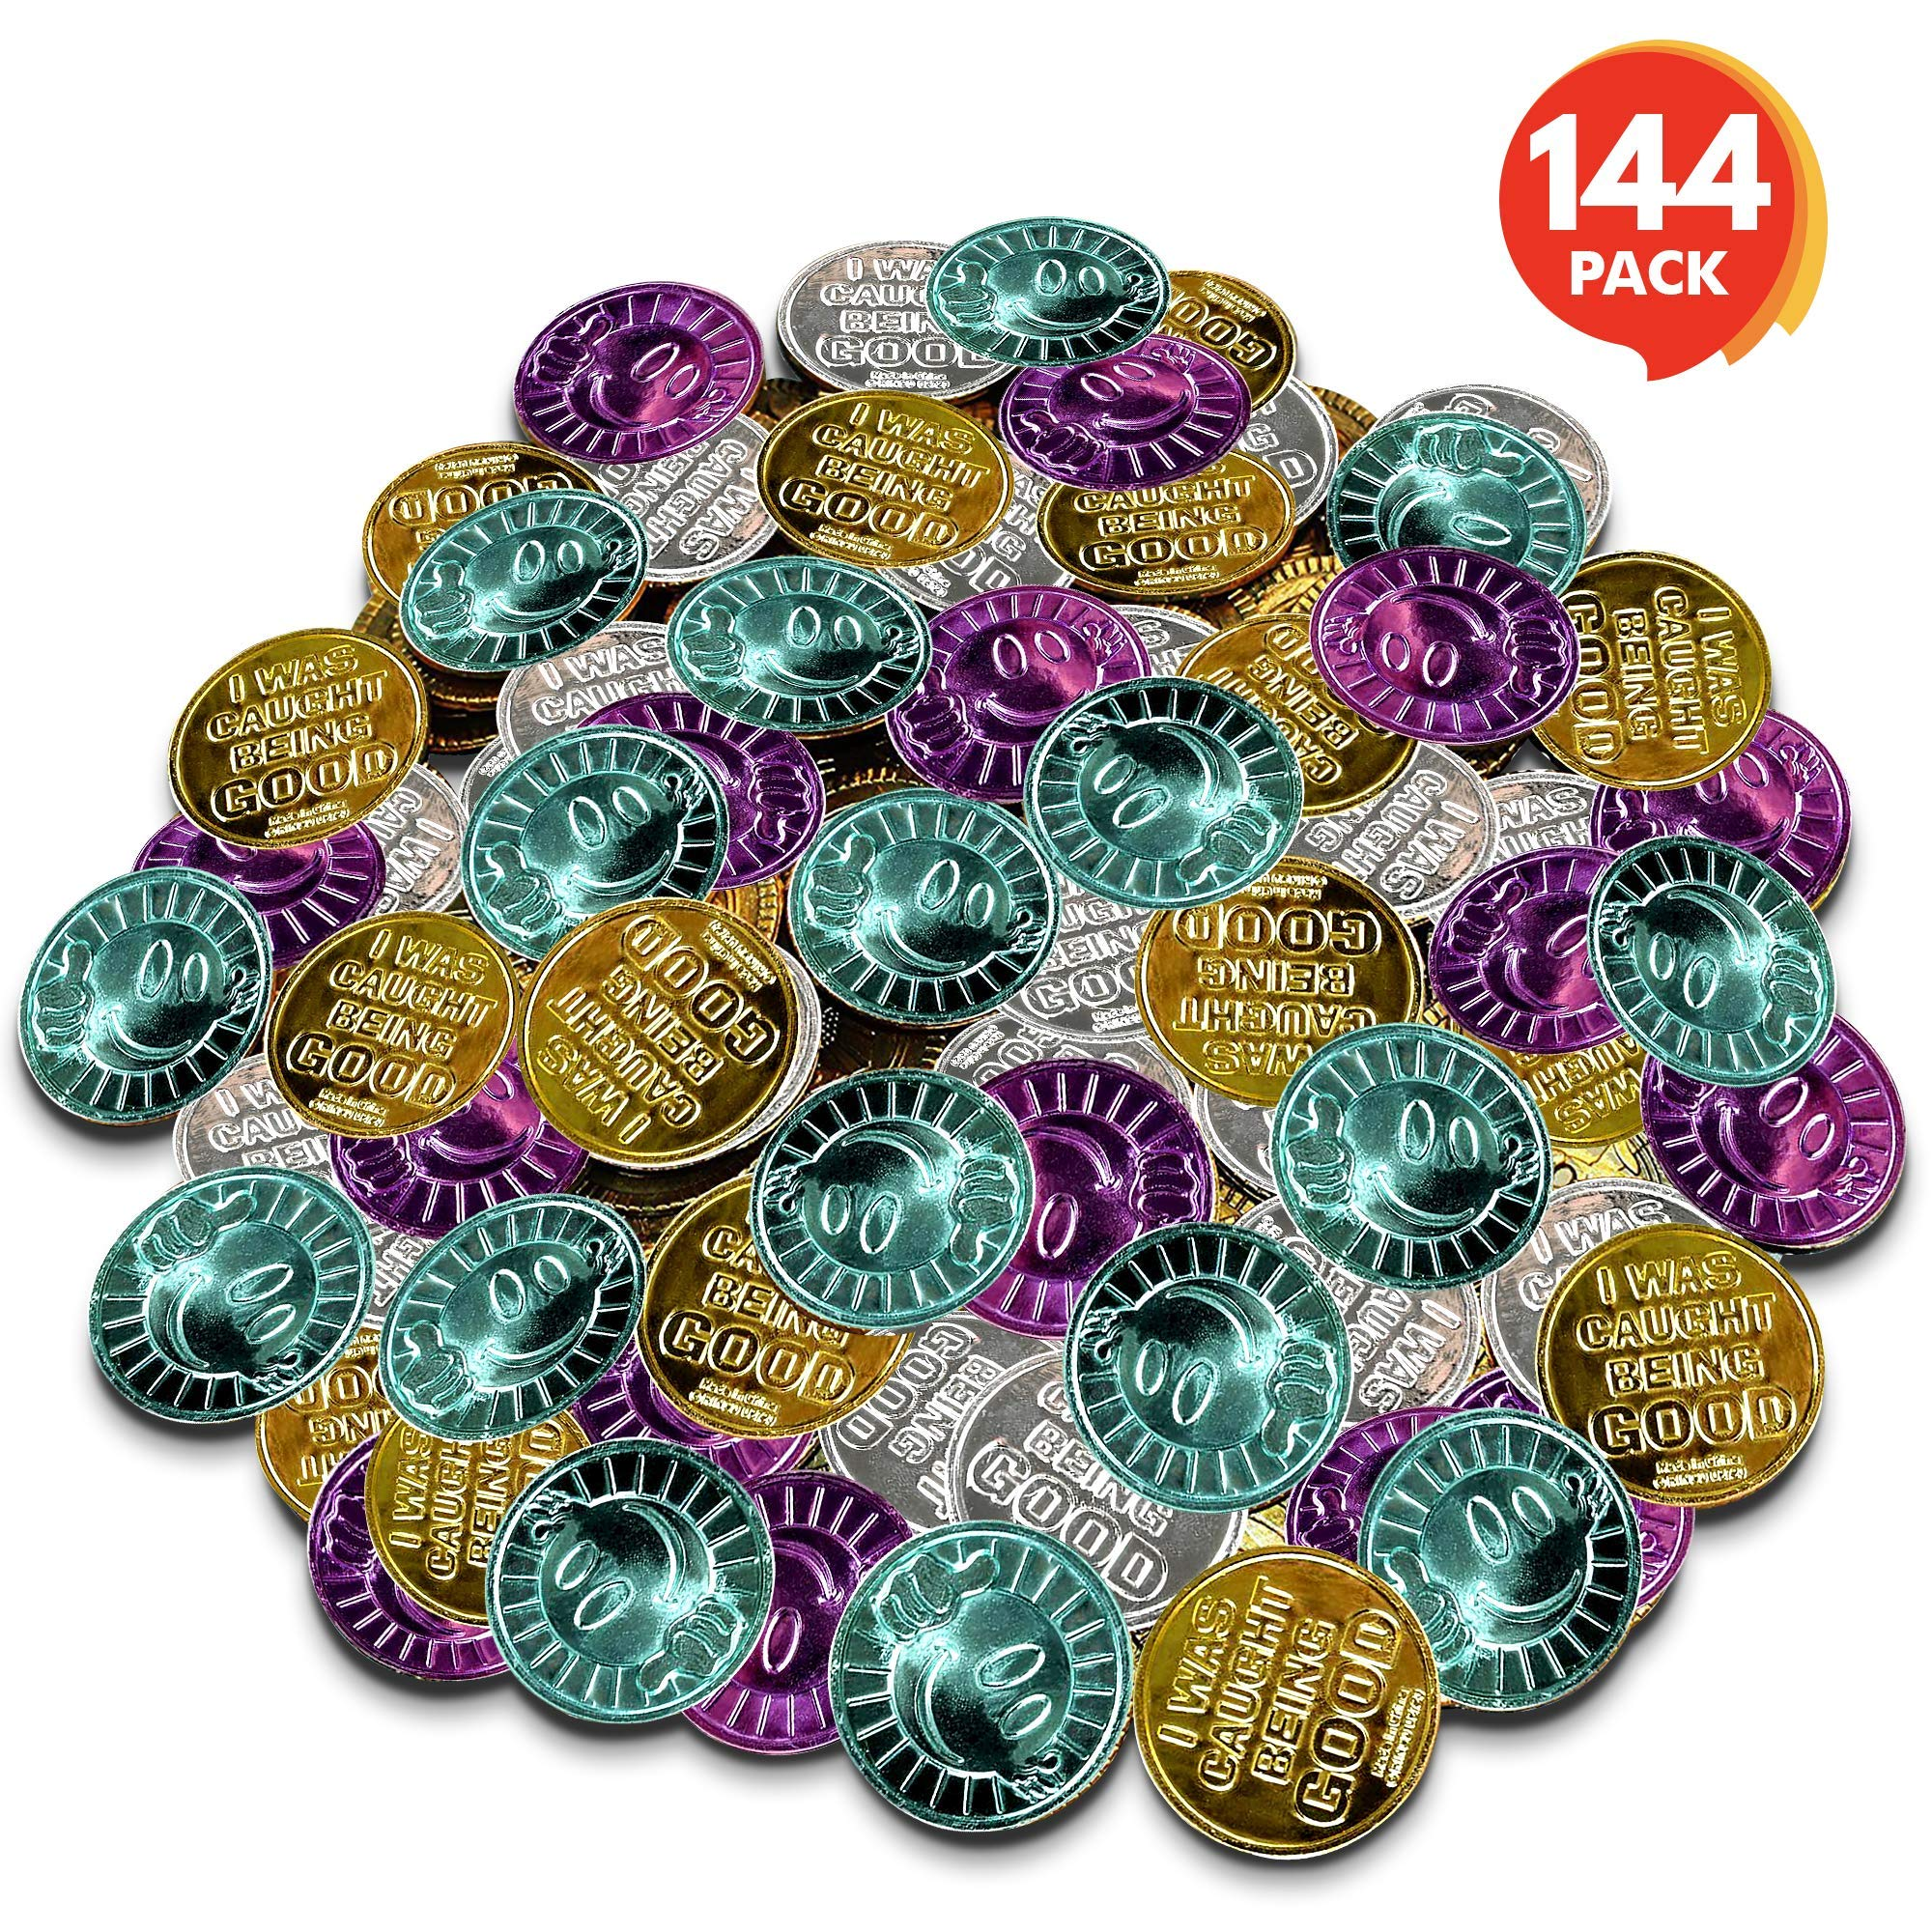 ArtCreativity Colorful Coin Collection - Pack of 144 - Smiley Face on One Side and Inscription Reading ''I was Caught Being Good'' on Other Side - Ideal School Reward and Prize from Mom to Kids Ages 3+ by ArtCreativity